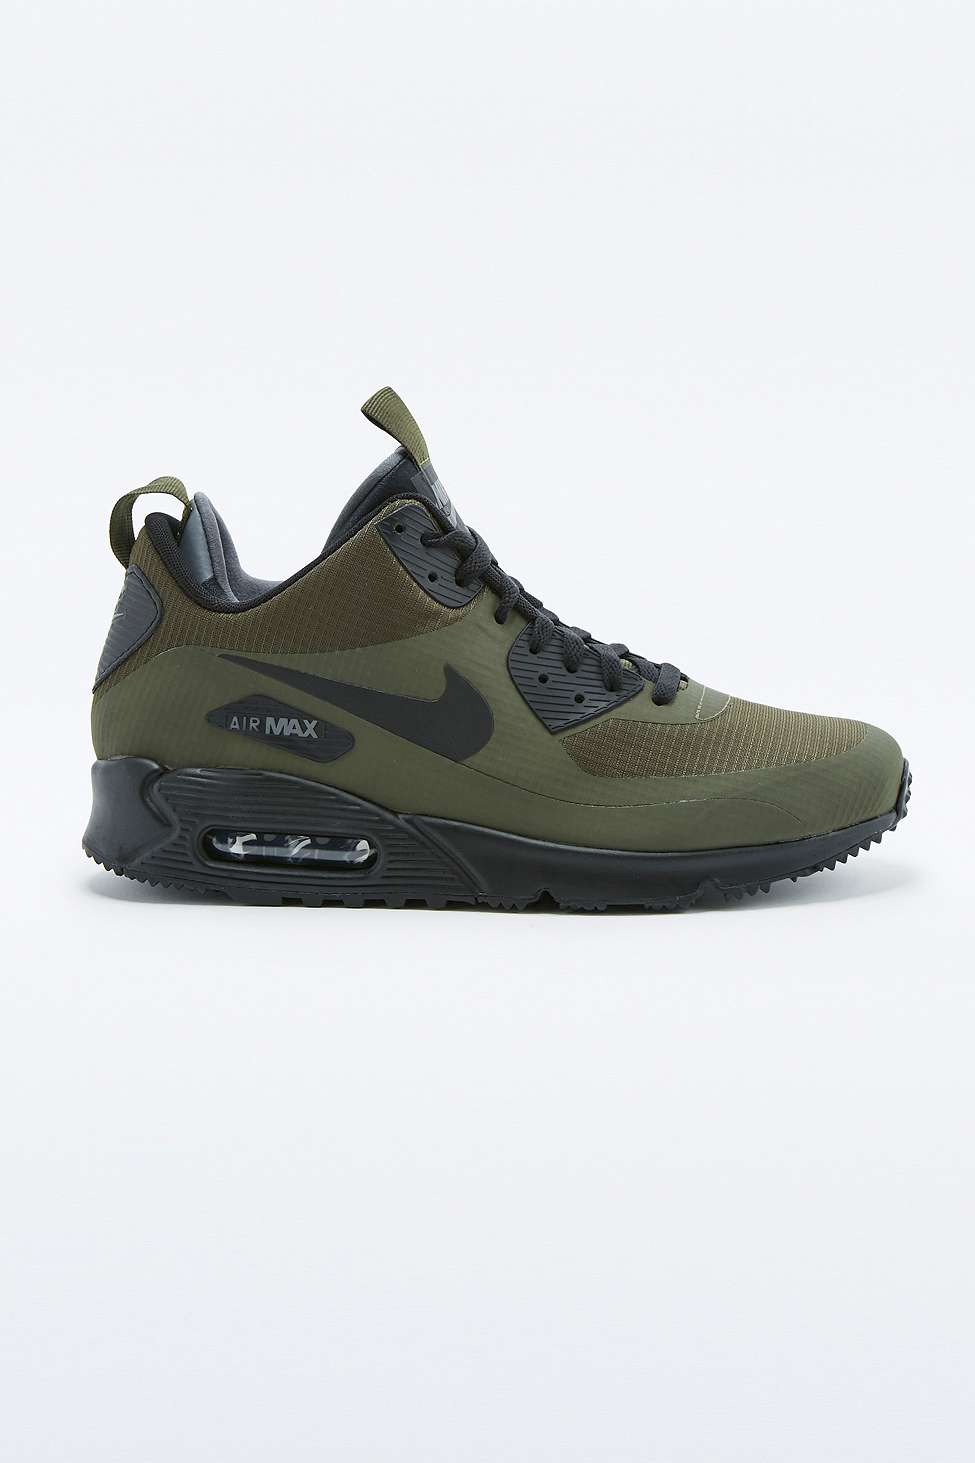 Air Max 90 Mid Winter Khaki Trainers by